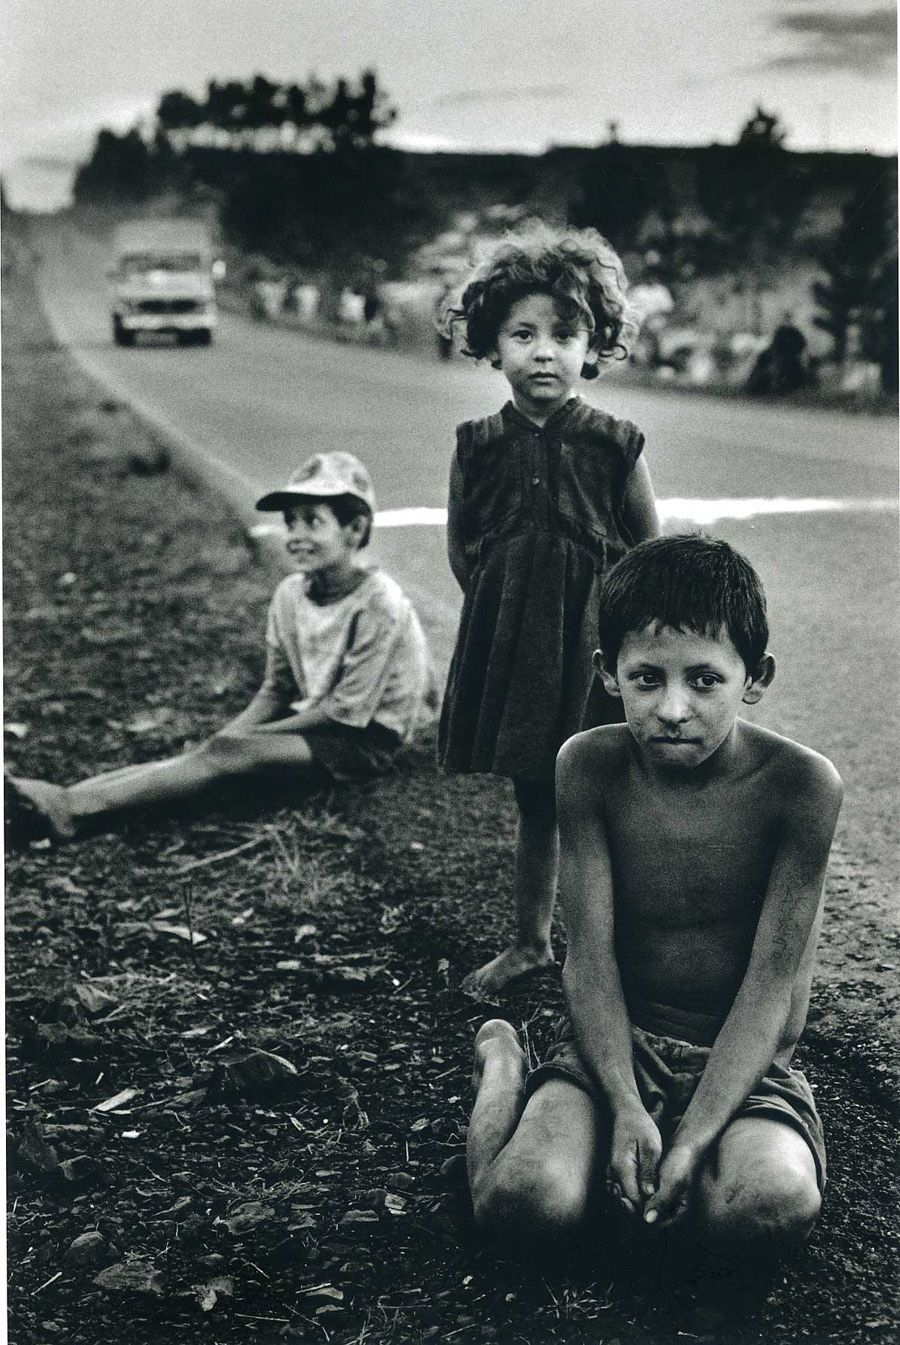 by Sebastião Salgado - From Terra: Struggle of the Landless, 1997, about the hard life of Brazilian peasants.